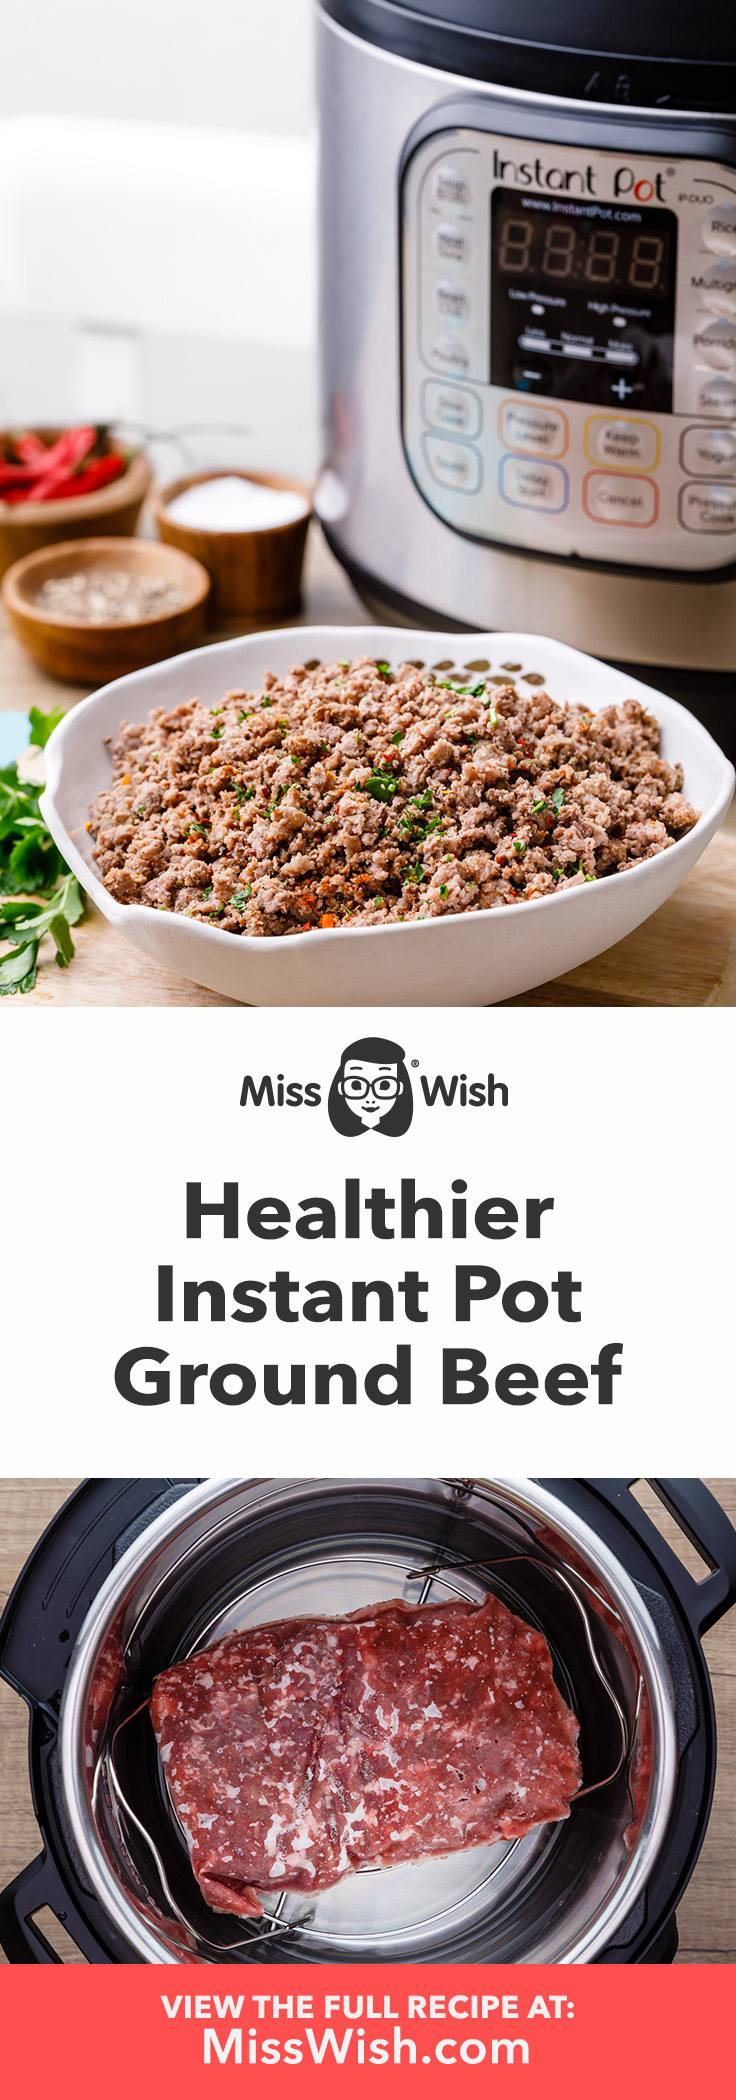 How to Cook Healthier Ground Beef in an Instant Pot